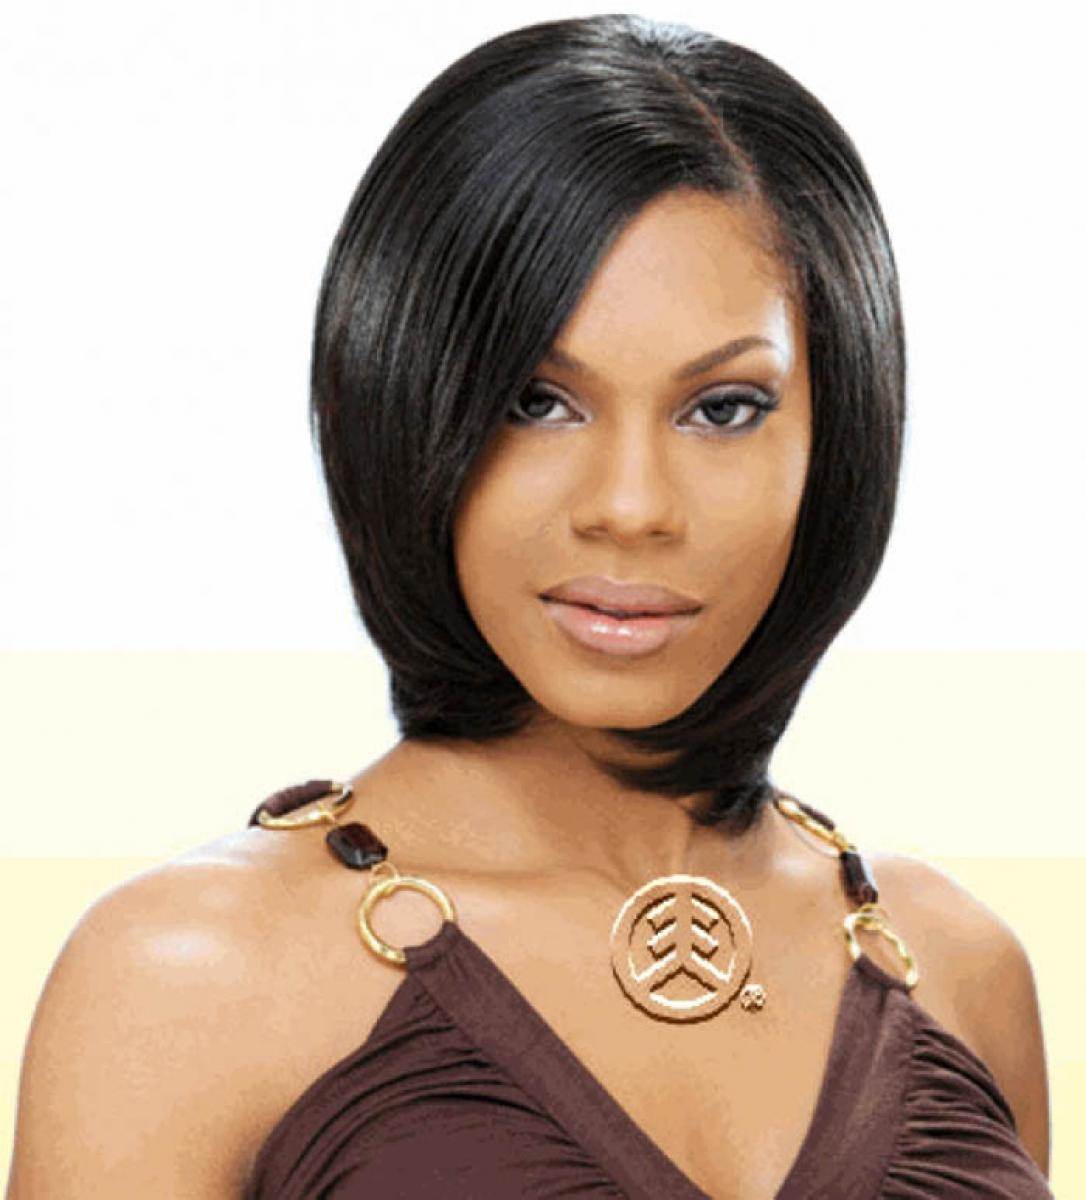 Tremendous Short Bob Straight Haircut African American